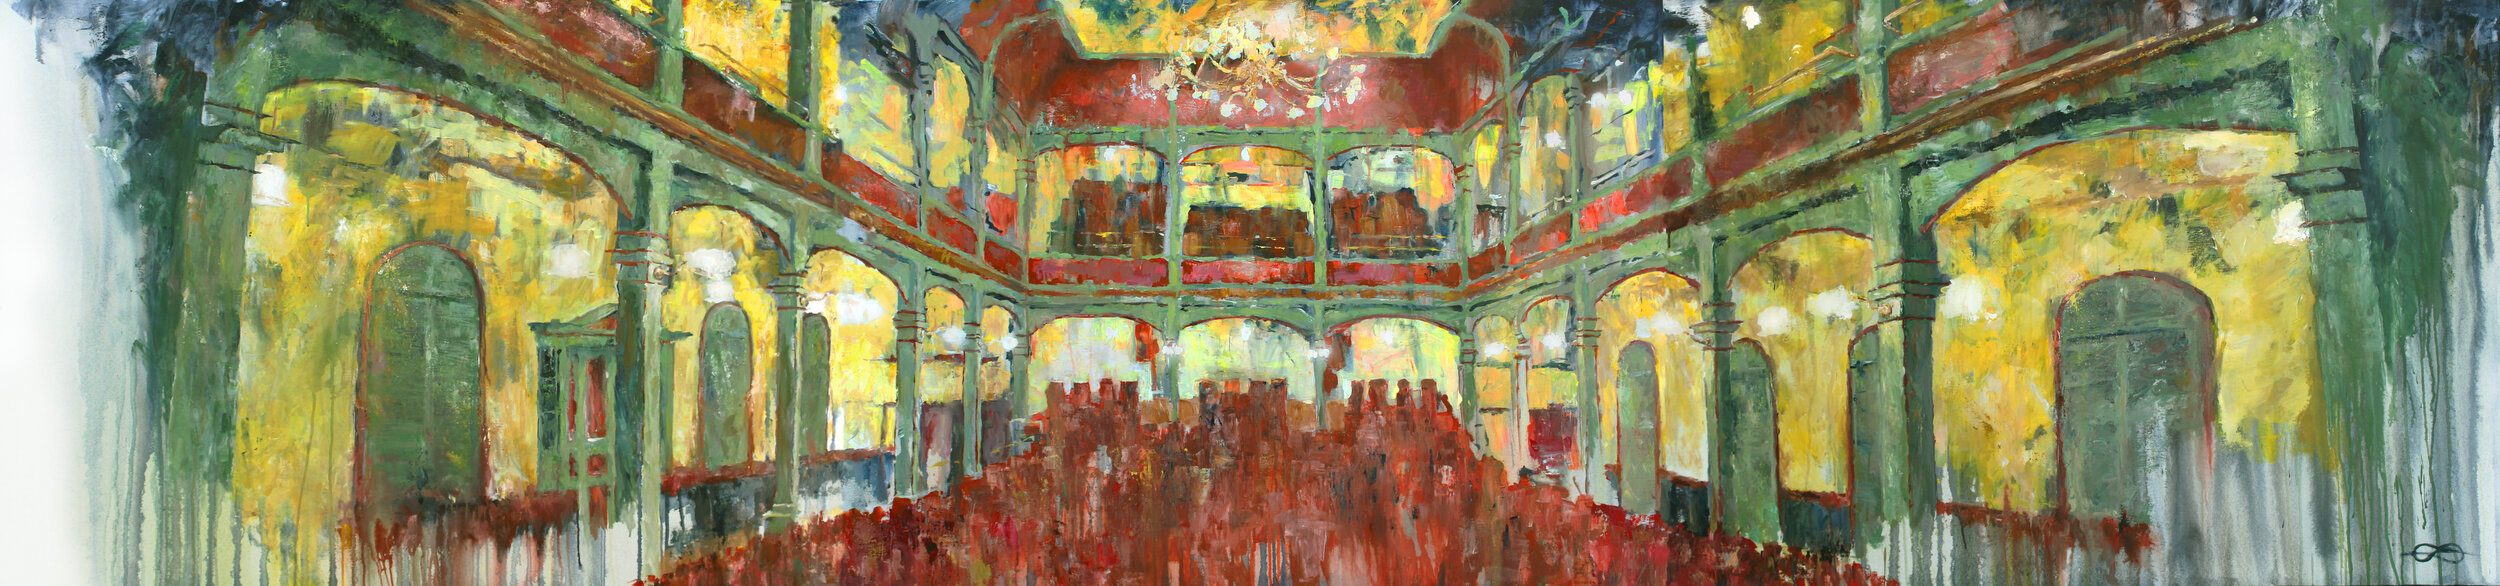 Triptychon: Tonhalle Wil - Applause / 2019 / acrylic on canvas / 100 x 140 cm, each